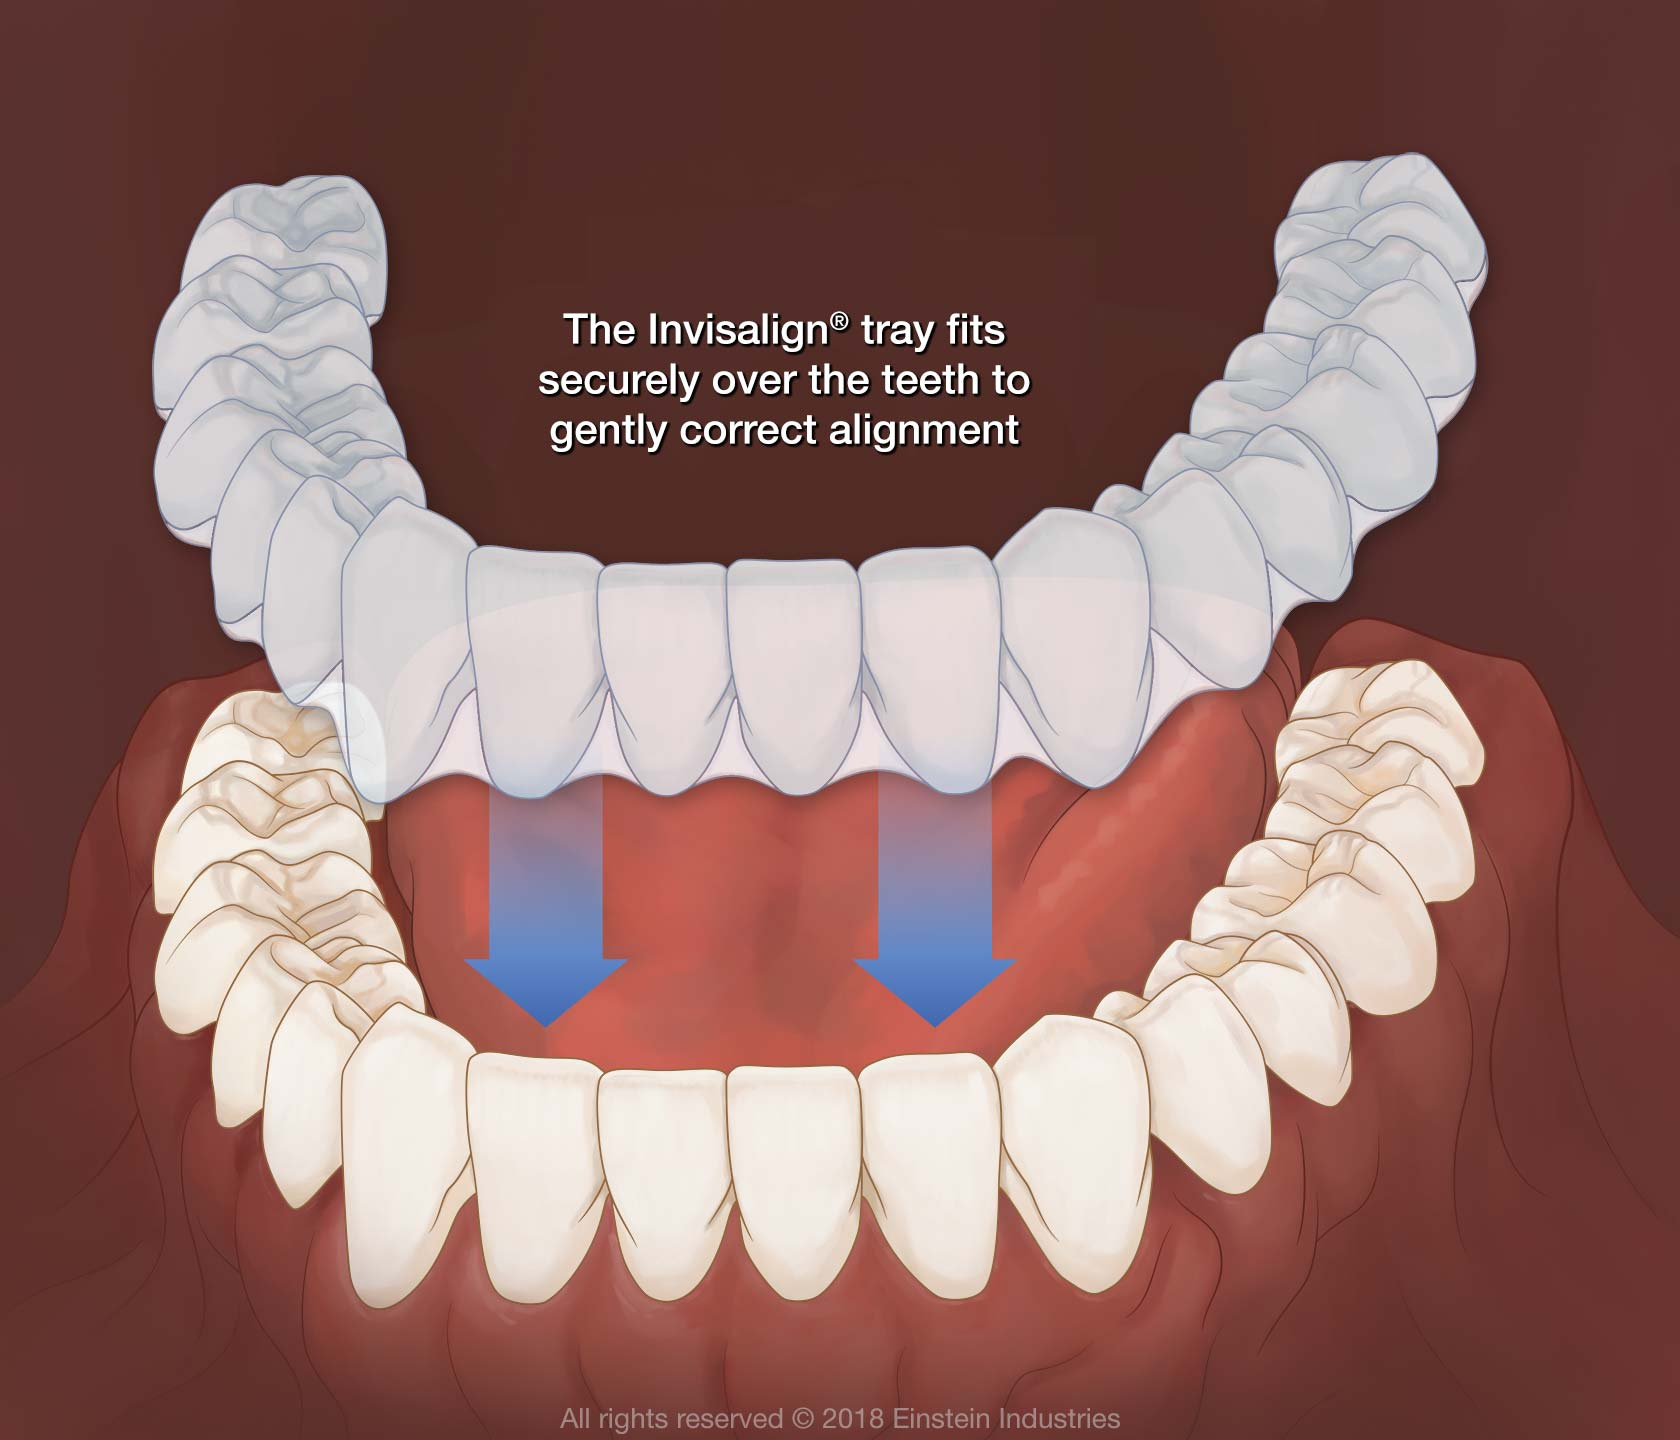 Demonstration of how Invisalign fits over teeth